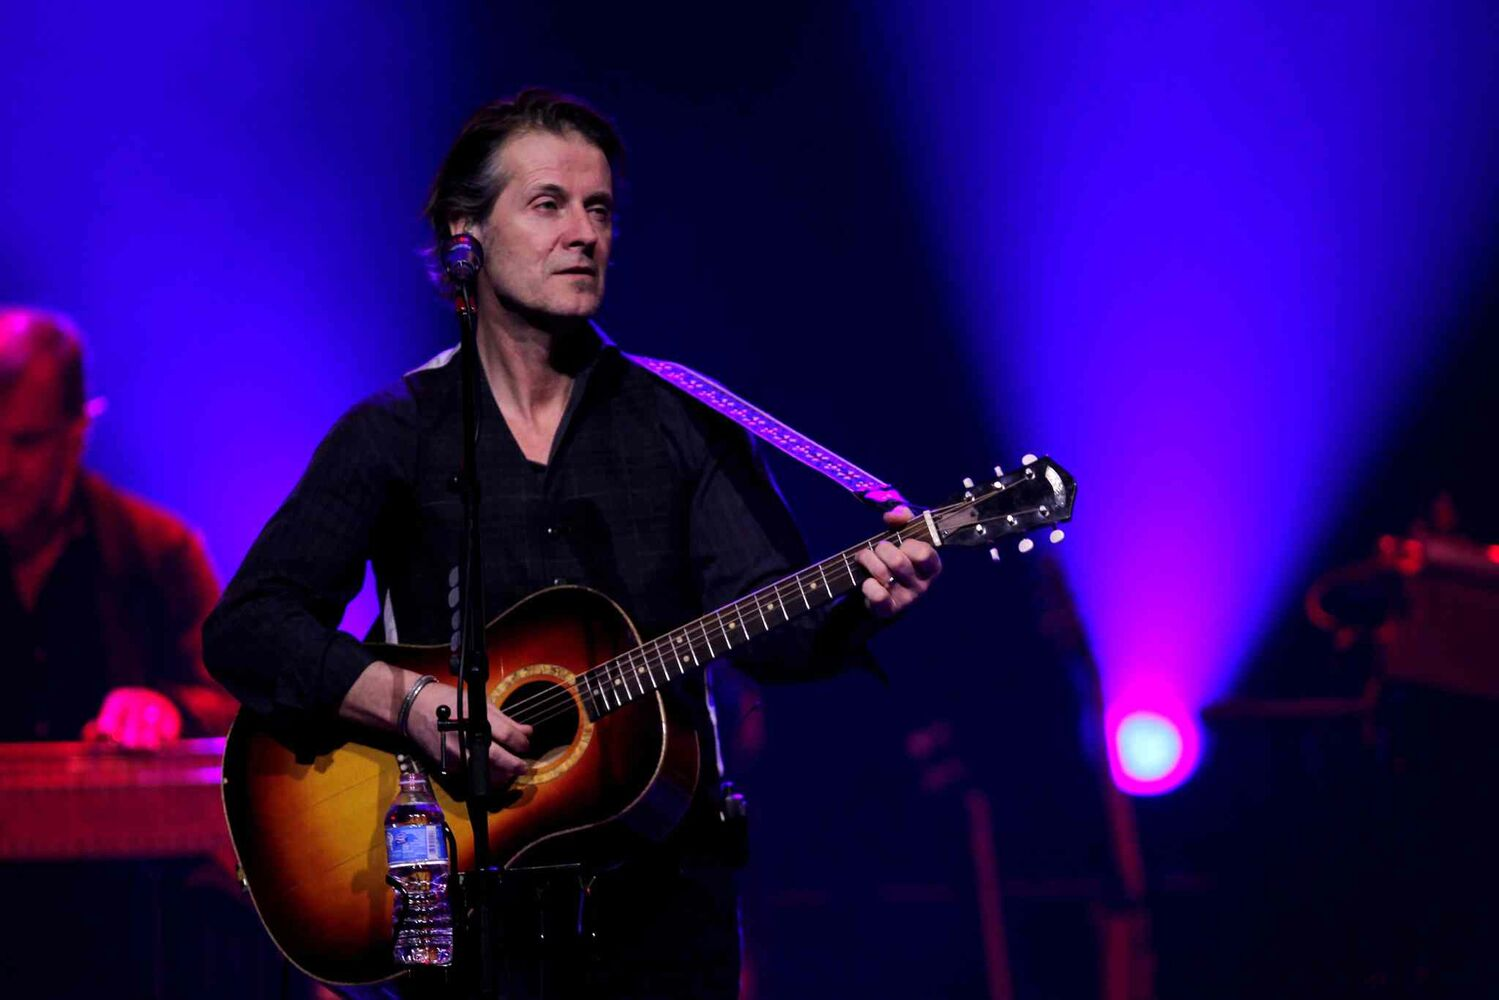 Blue Rodeo's Thursday night performance at Winnipeg's MTS Centre was a mellow, laid-back evening of music. (Boris Minkevich / Winnipeg Free Press)